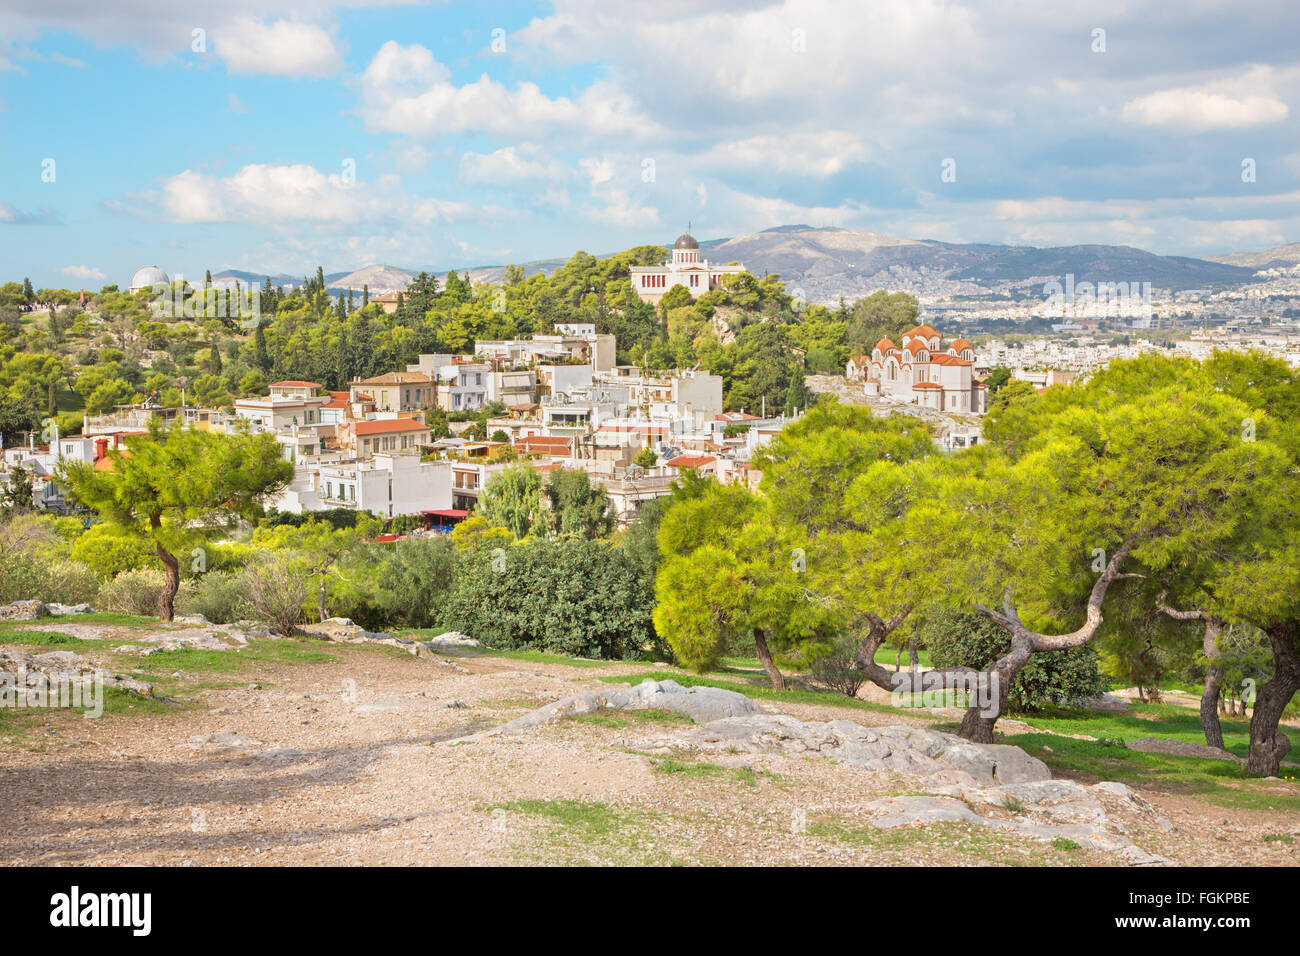 ATHENS, GREECE - OCTOBER 8, 2015: Outlook from Acropolis to Areopagus hill. - Stock Image